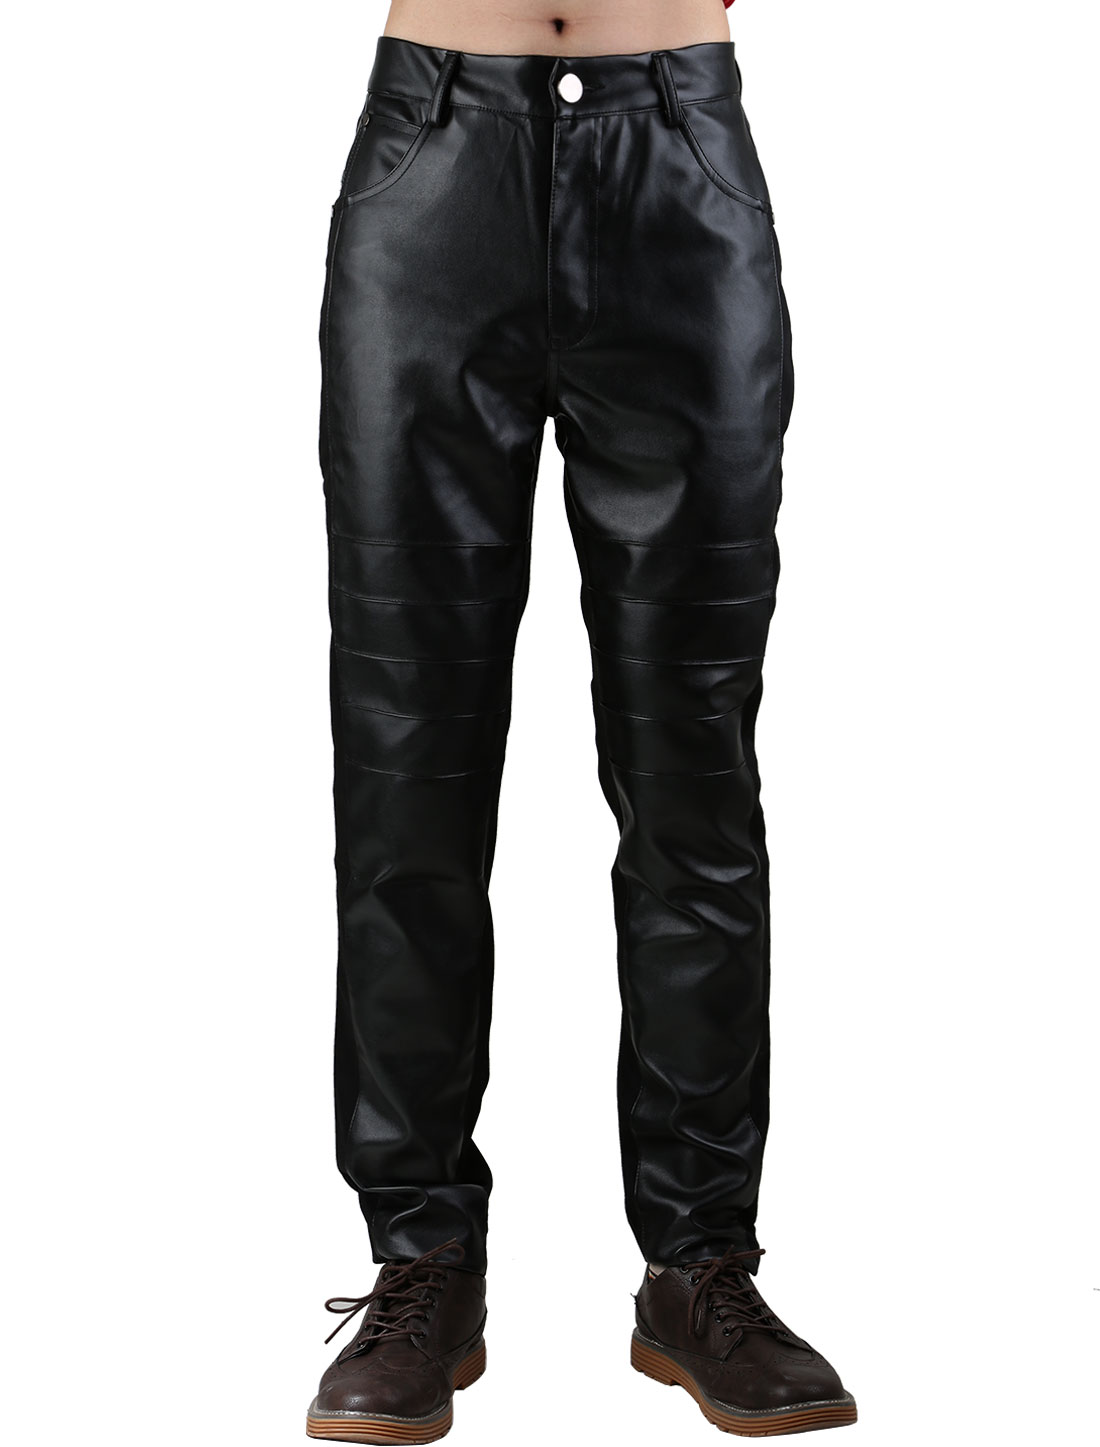 Mens Five Pockets Pleated Imitation Leather Panel Casual Pants Black M